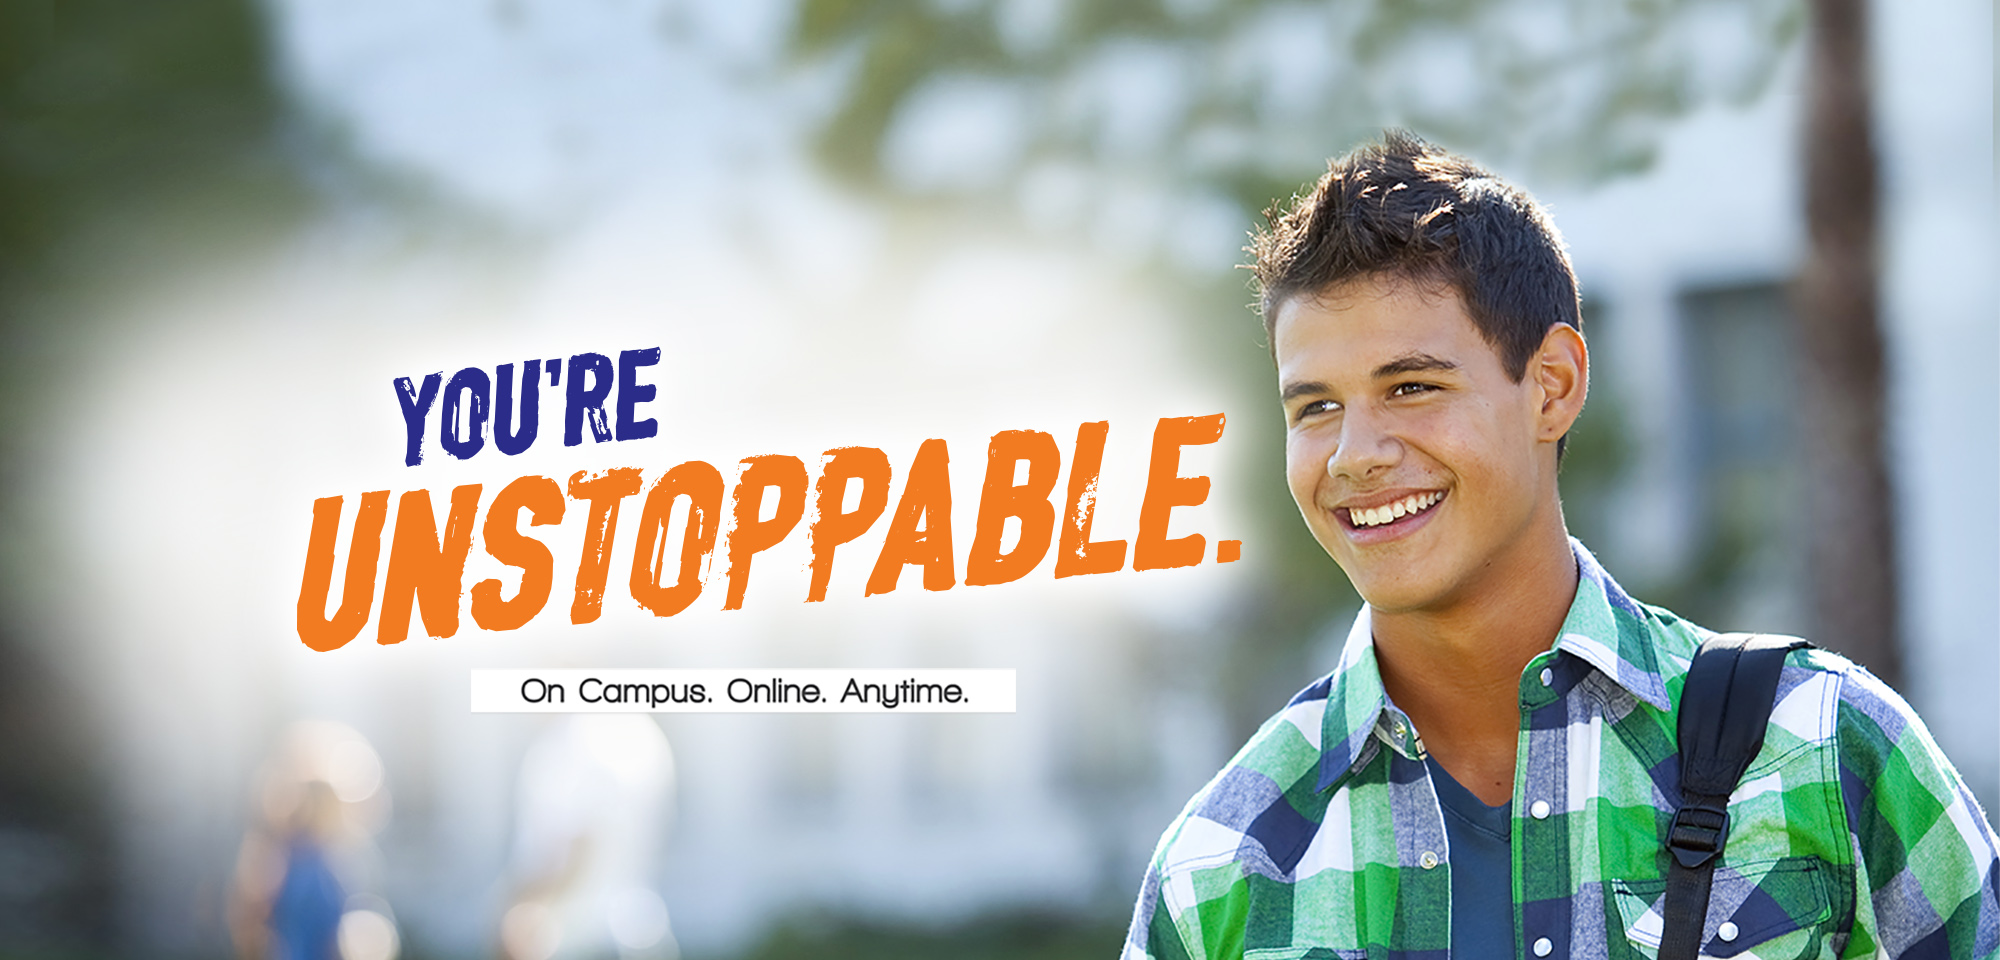 You're Unstoppable. On Campus. Online. Anytime.